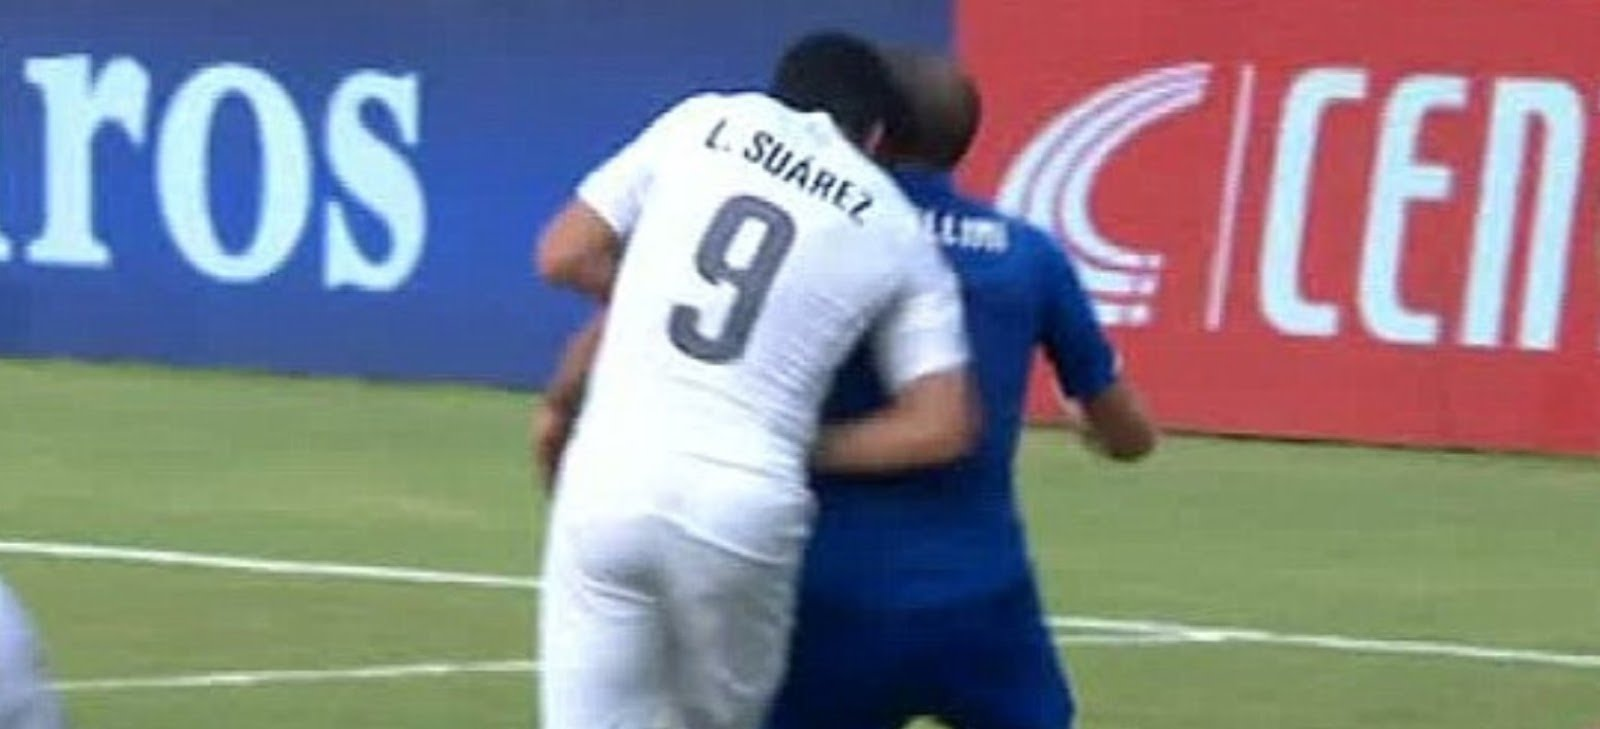 Suarez biting incident during world cup 2014